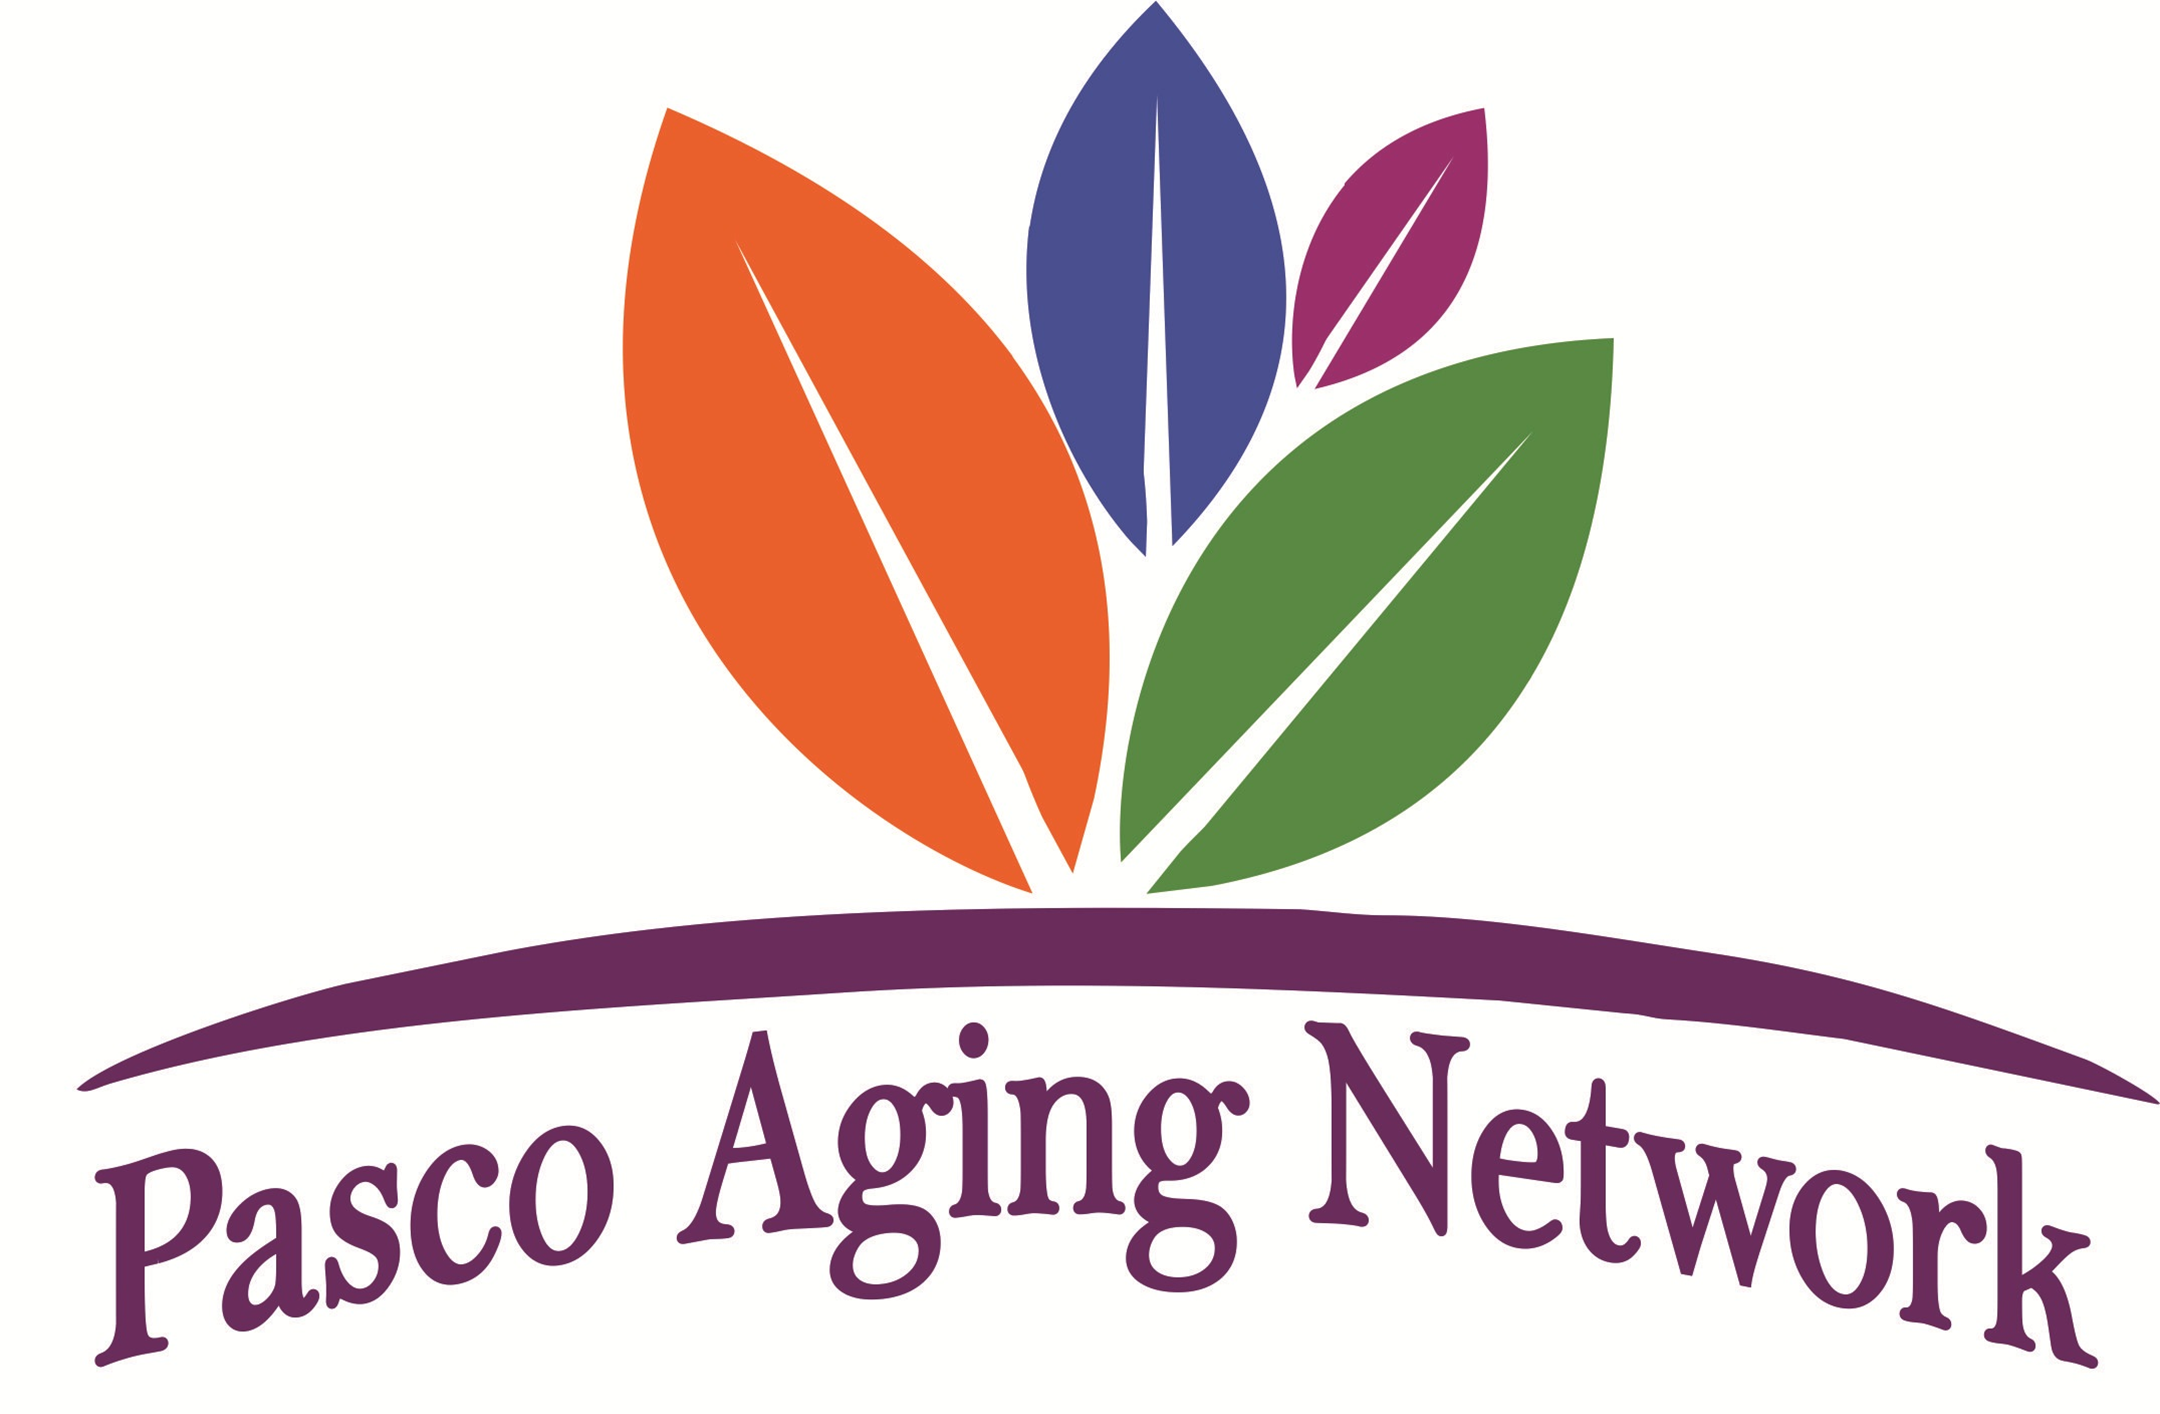 Pasco Aging Network